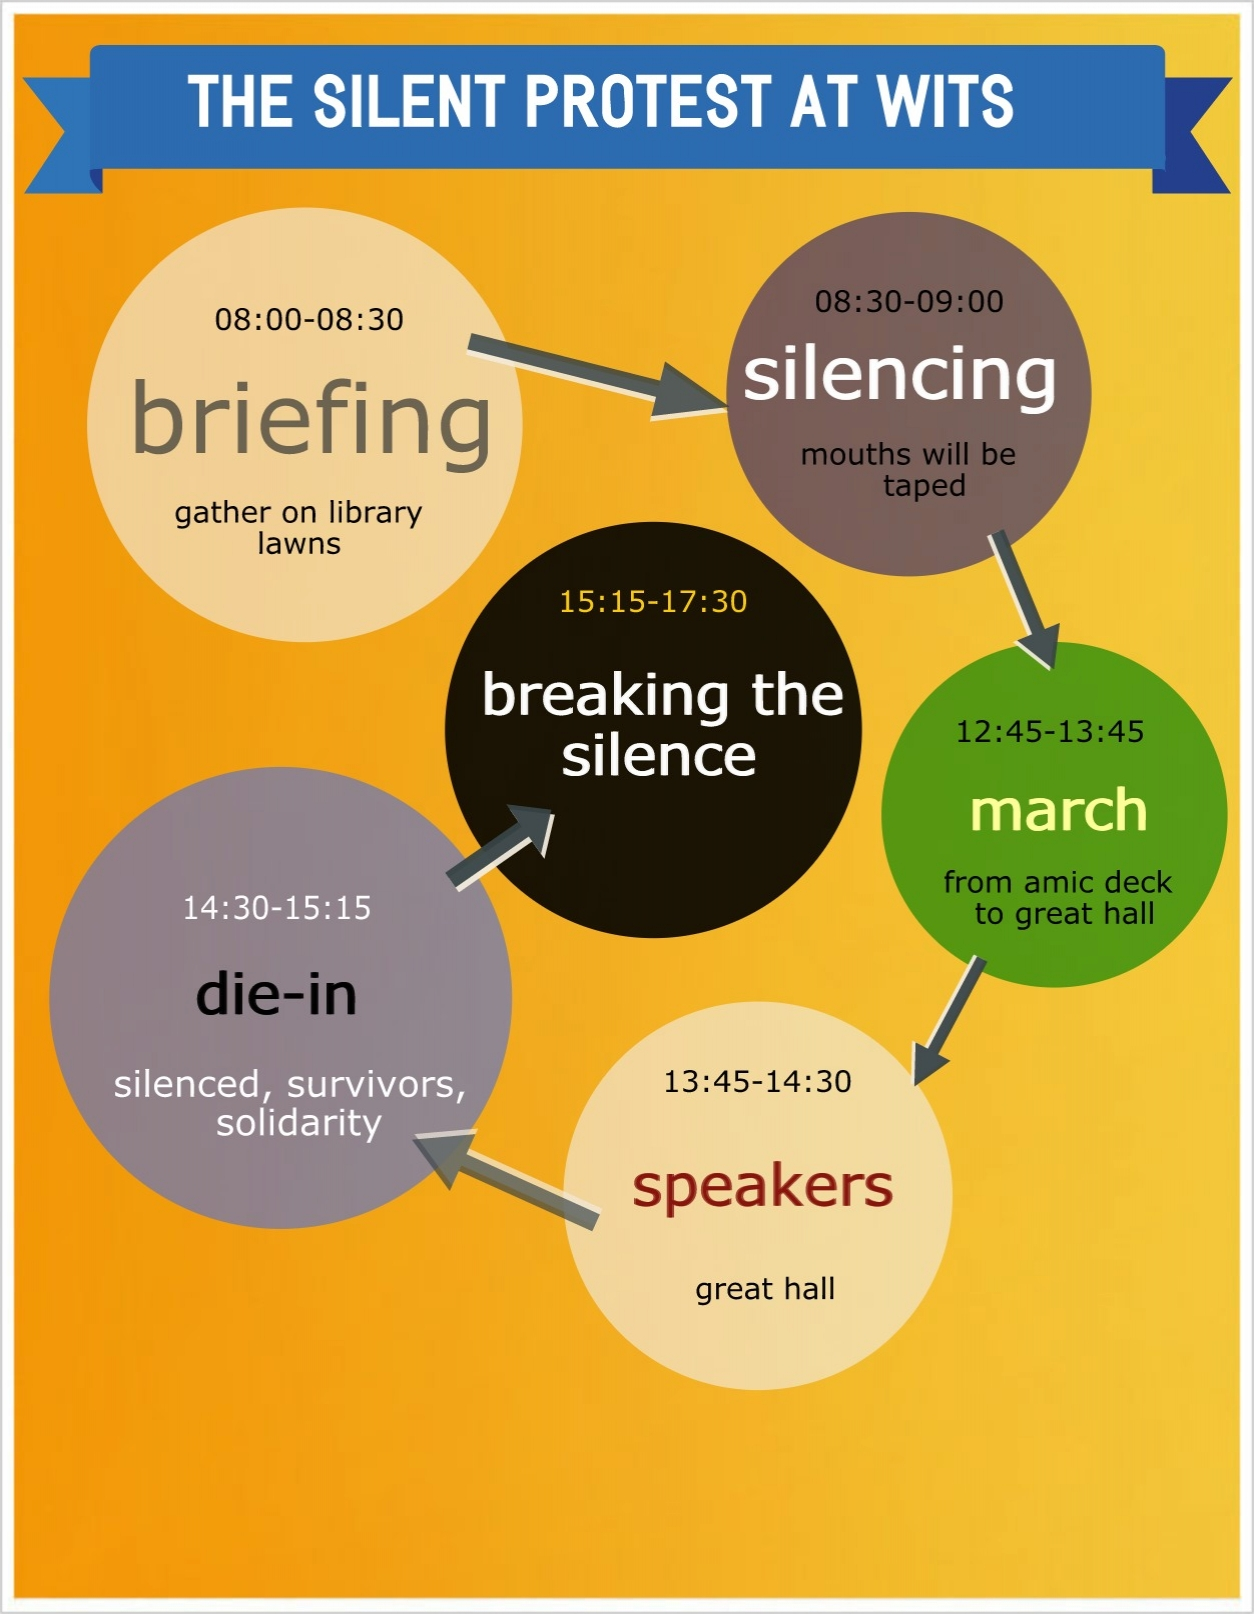 The schedule of events for the silent protest at Wits. Image: Dinesh Balliah.